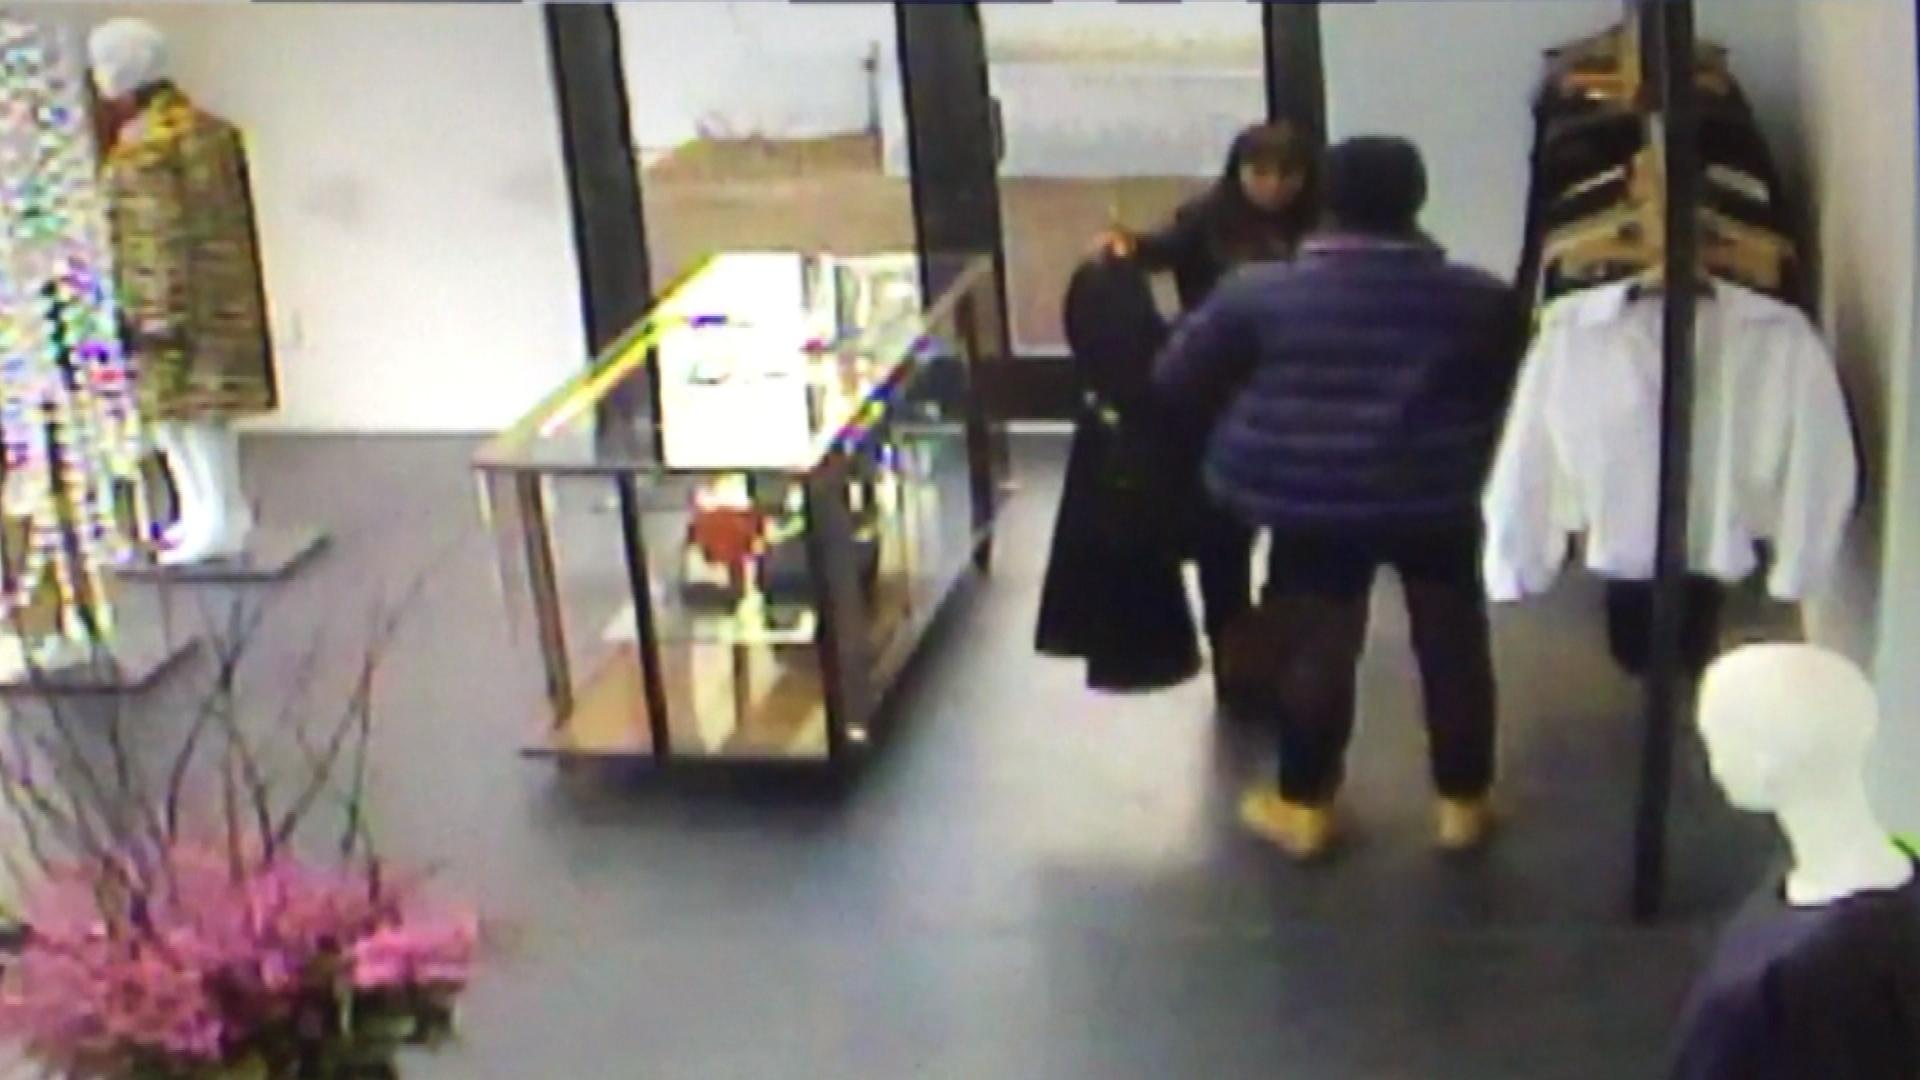 The shoplifters in the Vail store (credit: CBS)